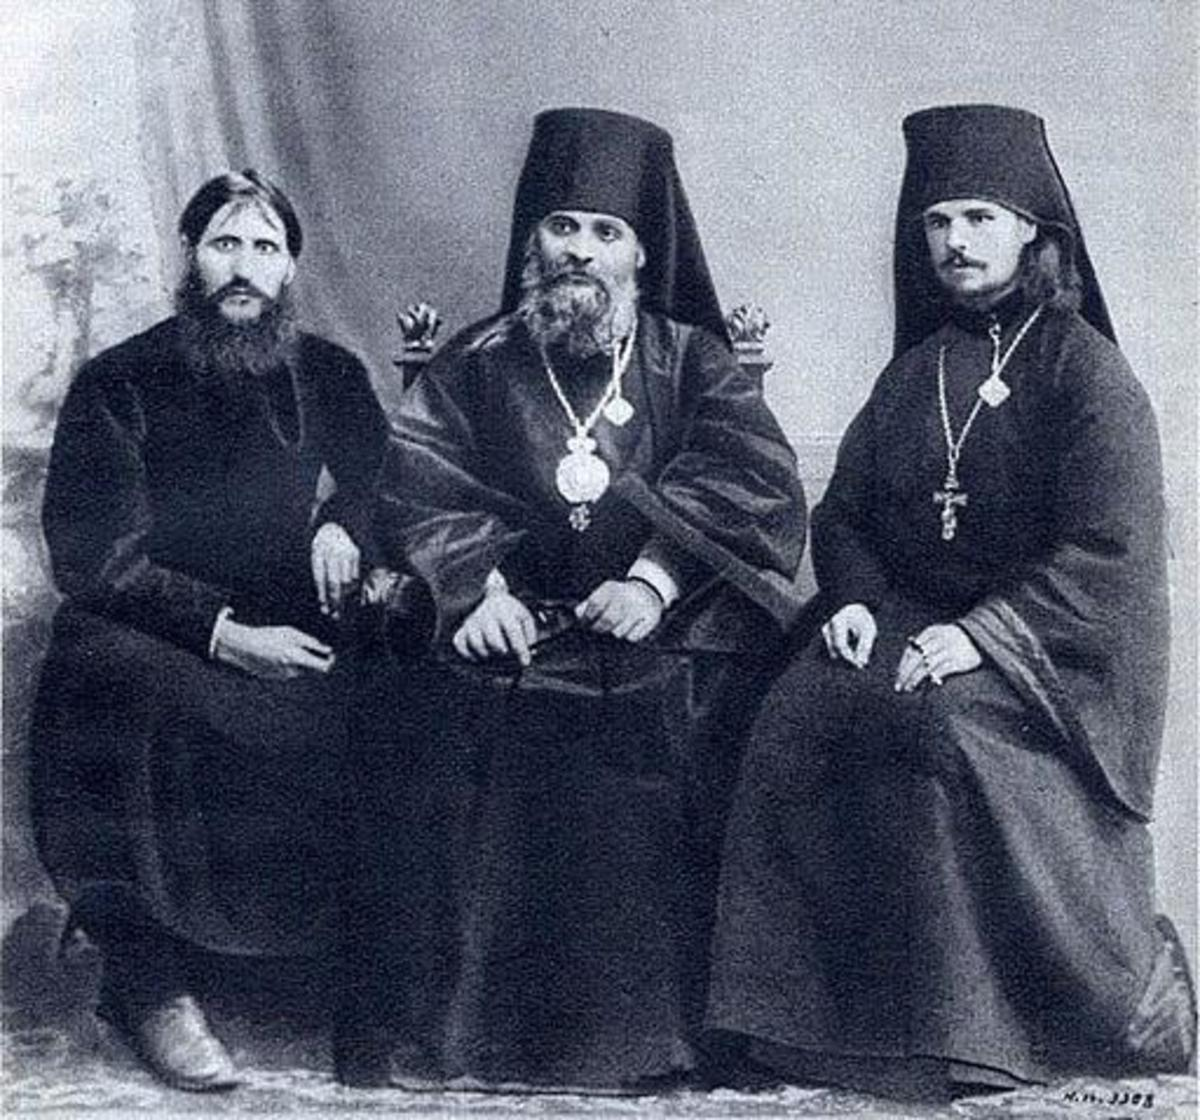 Rasputin with Church leaders. They had no love for the mystic monk.